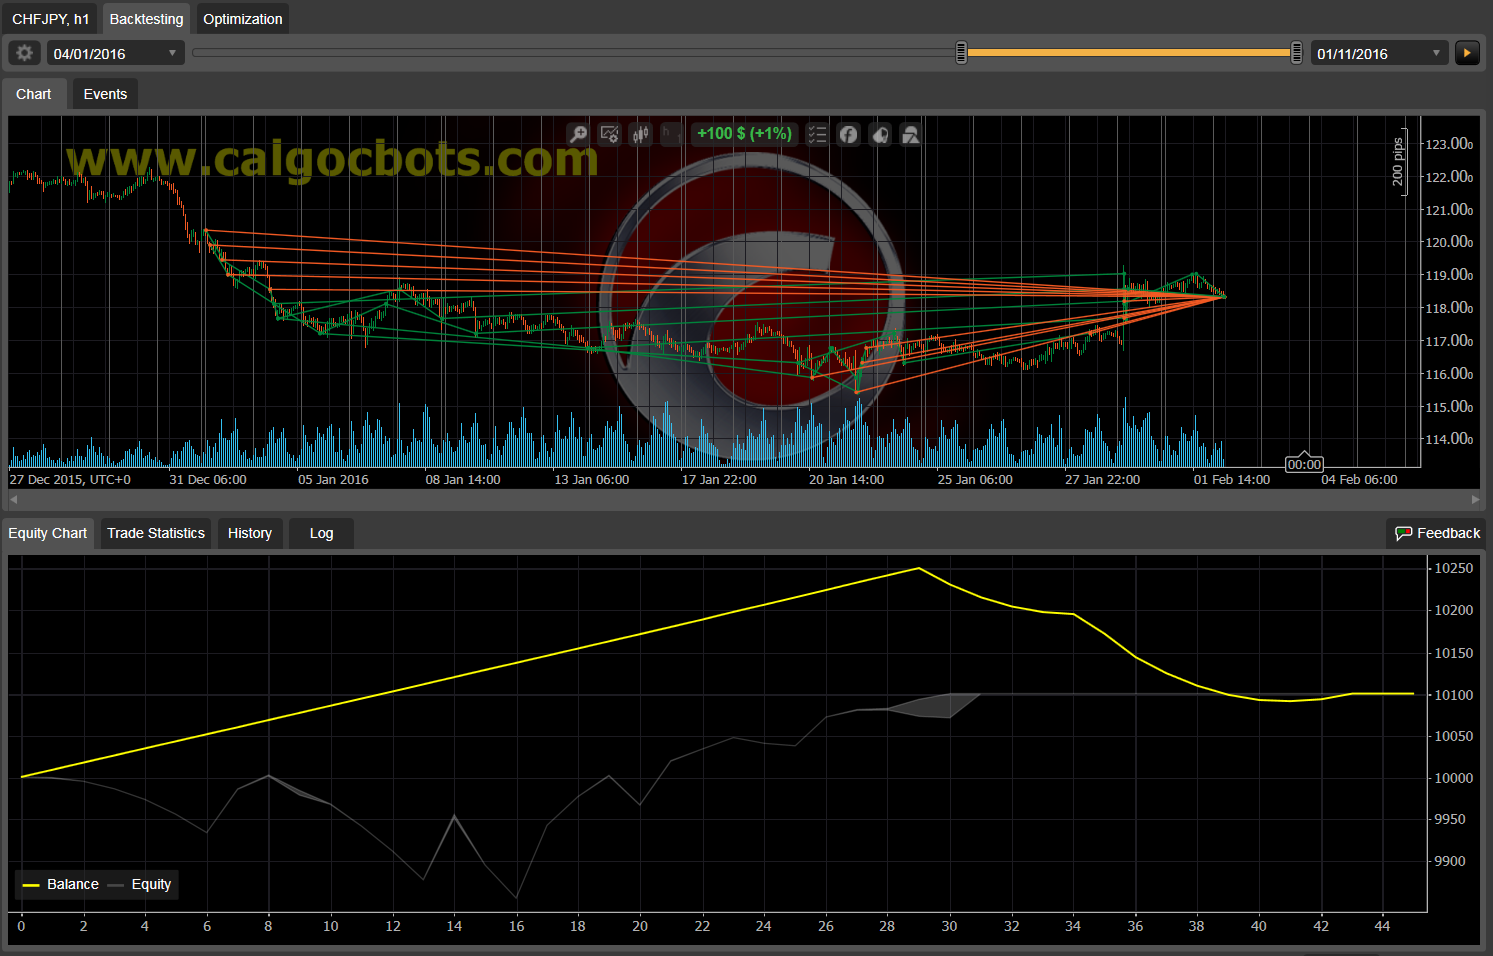 Dual Grid Hedge CHF JPY 1h cAlgo cBots cTrader 1k 100 45 90 - 06